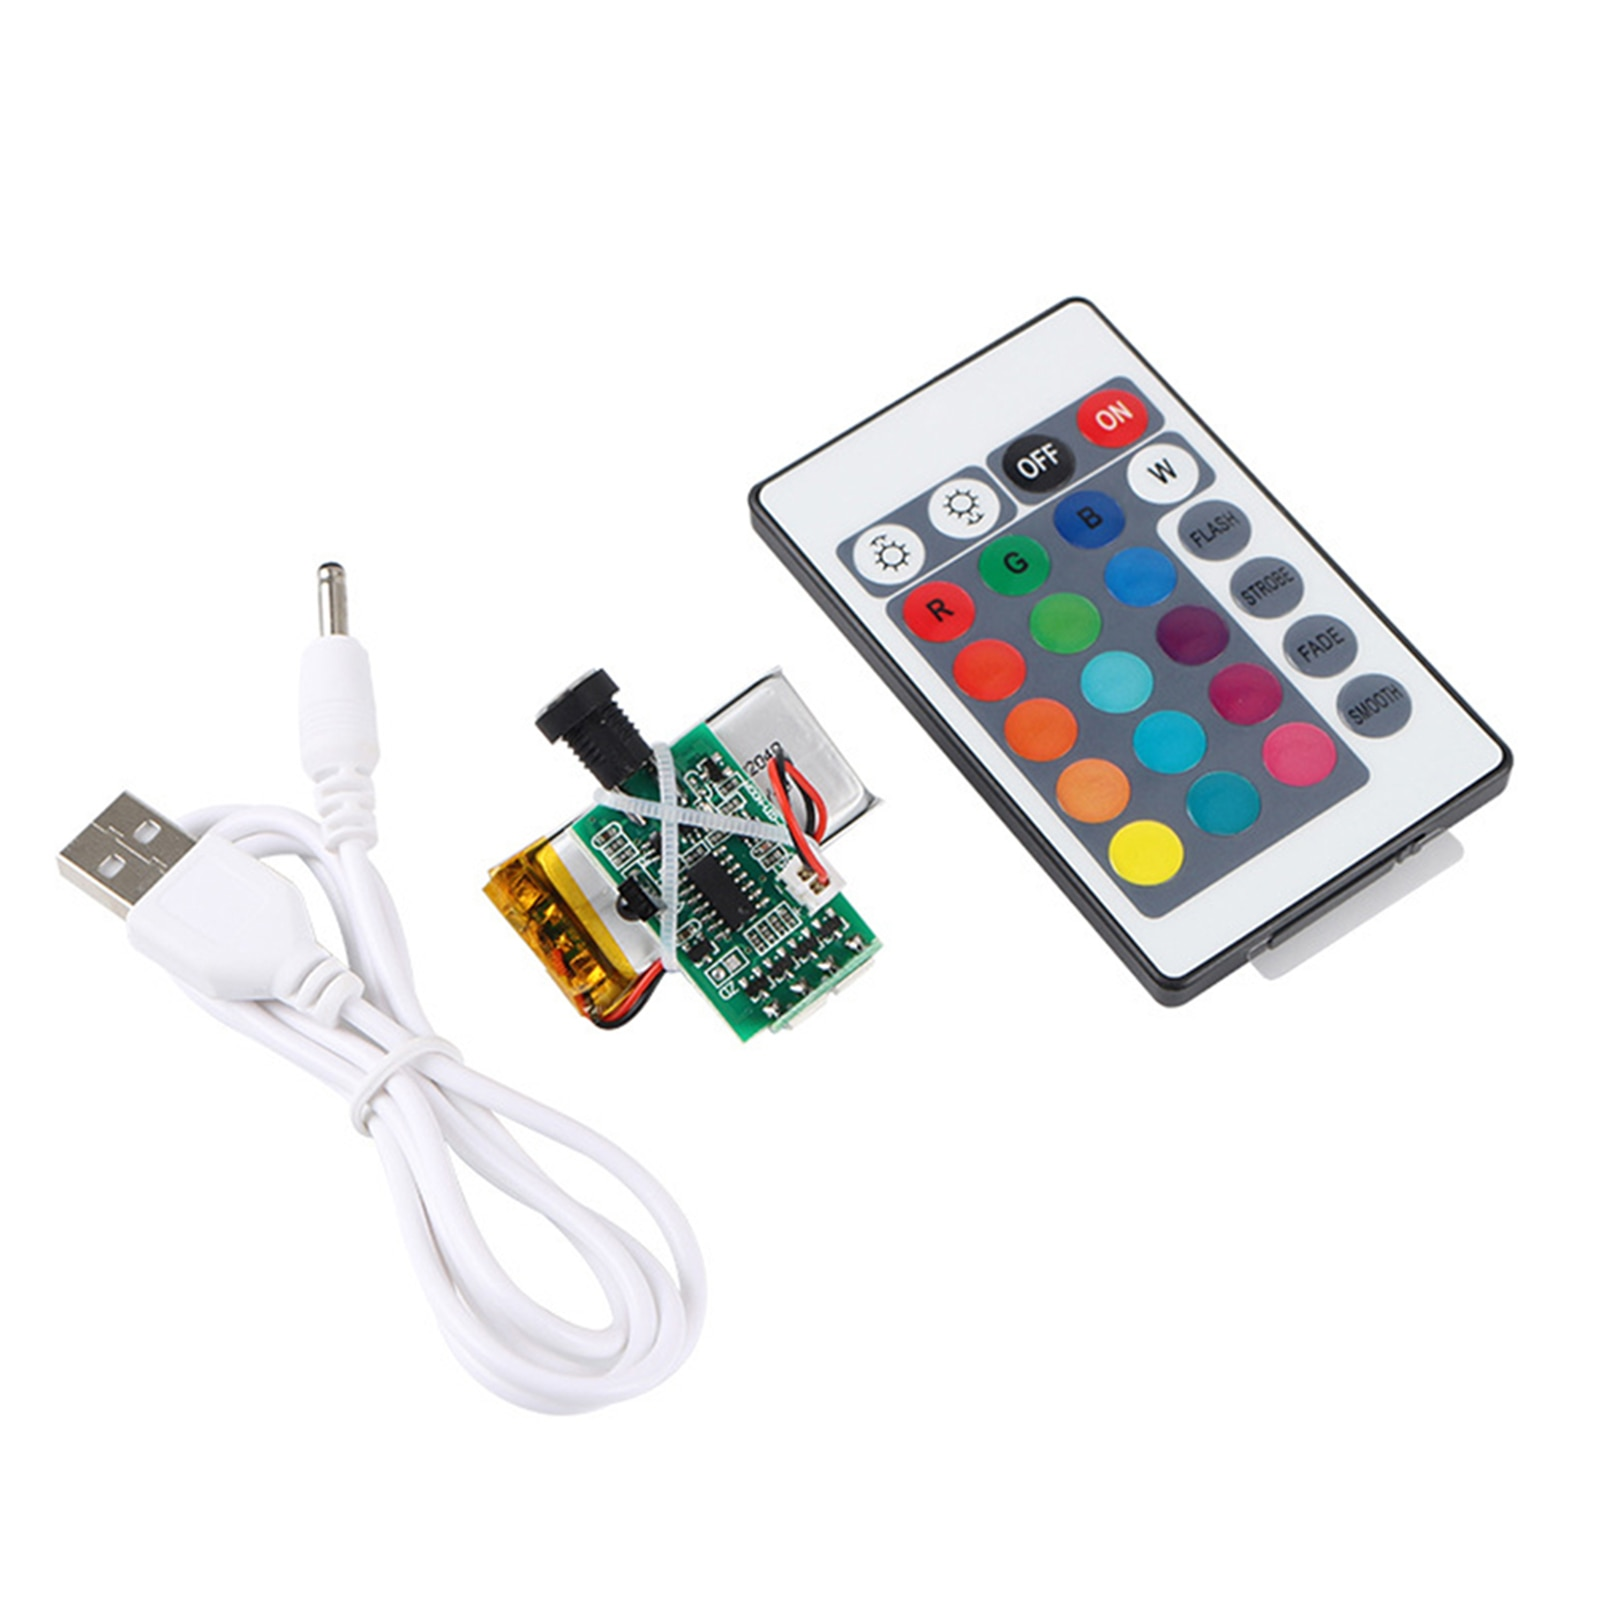 16 Colors LED Moon Lamp Board 3D Printer Parts Night Circuit Panel With Battery 1W Touch Sensor Remo